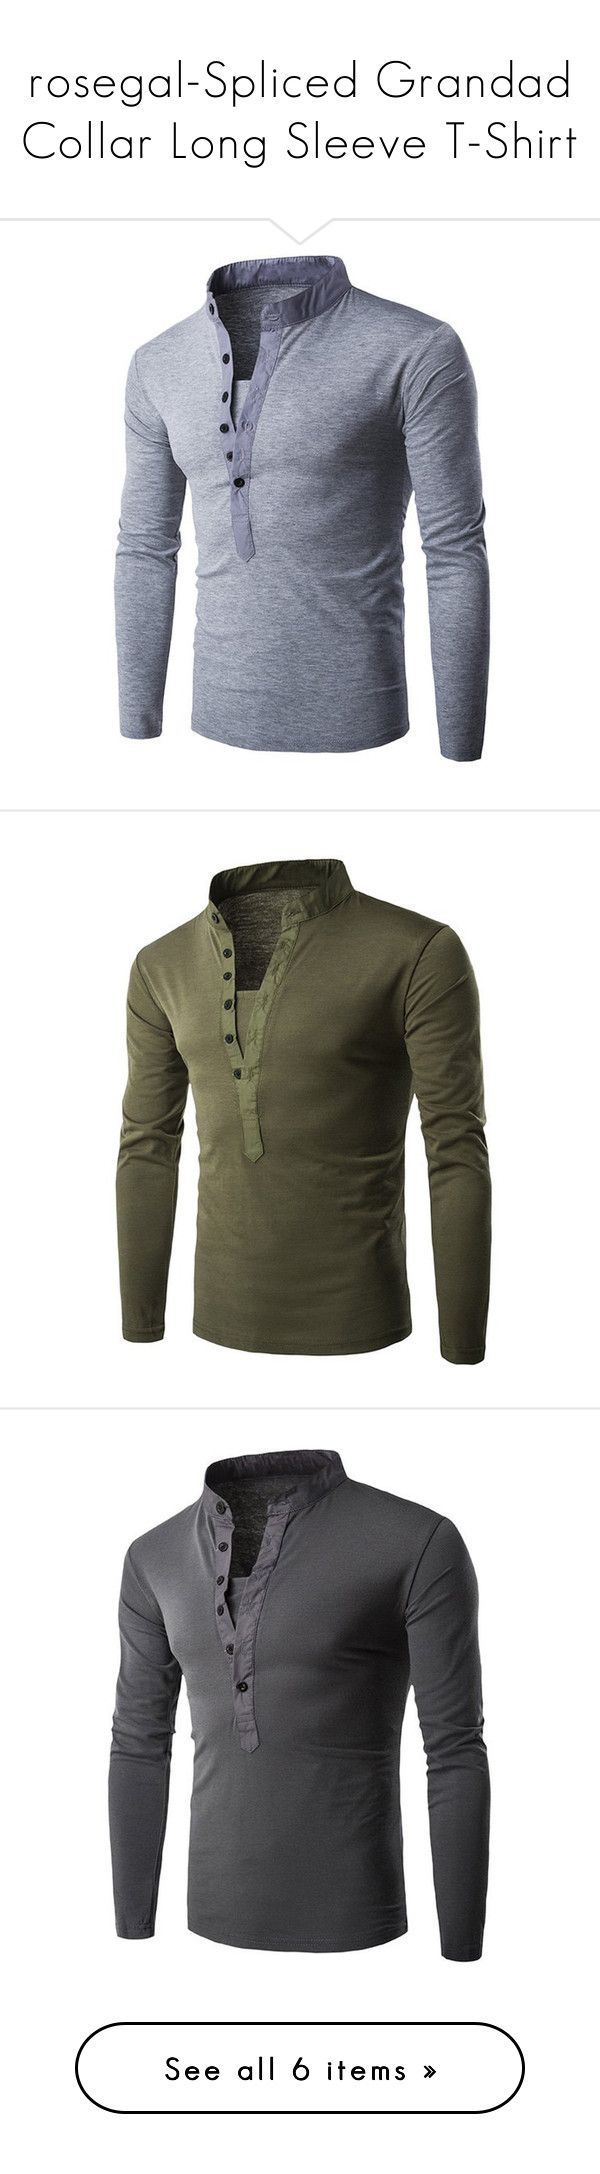 """""""rosegal-Spliced Grandad Collar Long Sleeve T-Shirt"""" by fshionme ❤ liked on Polyvore featuring men's fashion, men's clothing, men's shirts, men's t-shirts, mens longsleeve shirts, mens collared shirts, mens grandad collar shirt, mens long sleeve shirts, mens long sleeve collared shirts and mens long sleeve t shirts"""